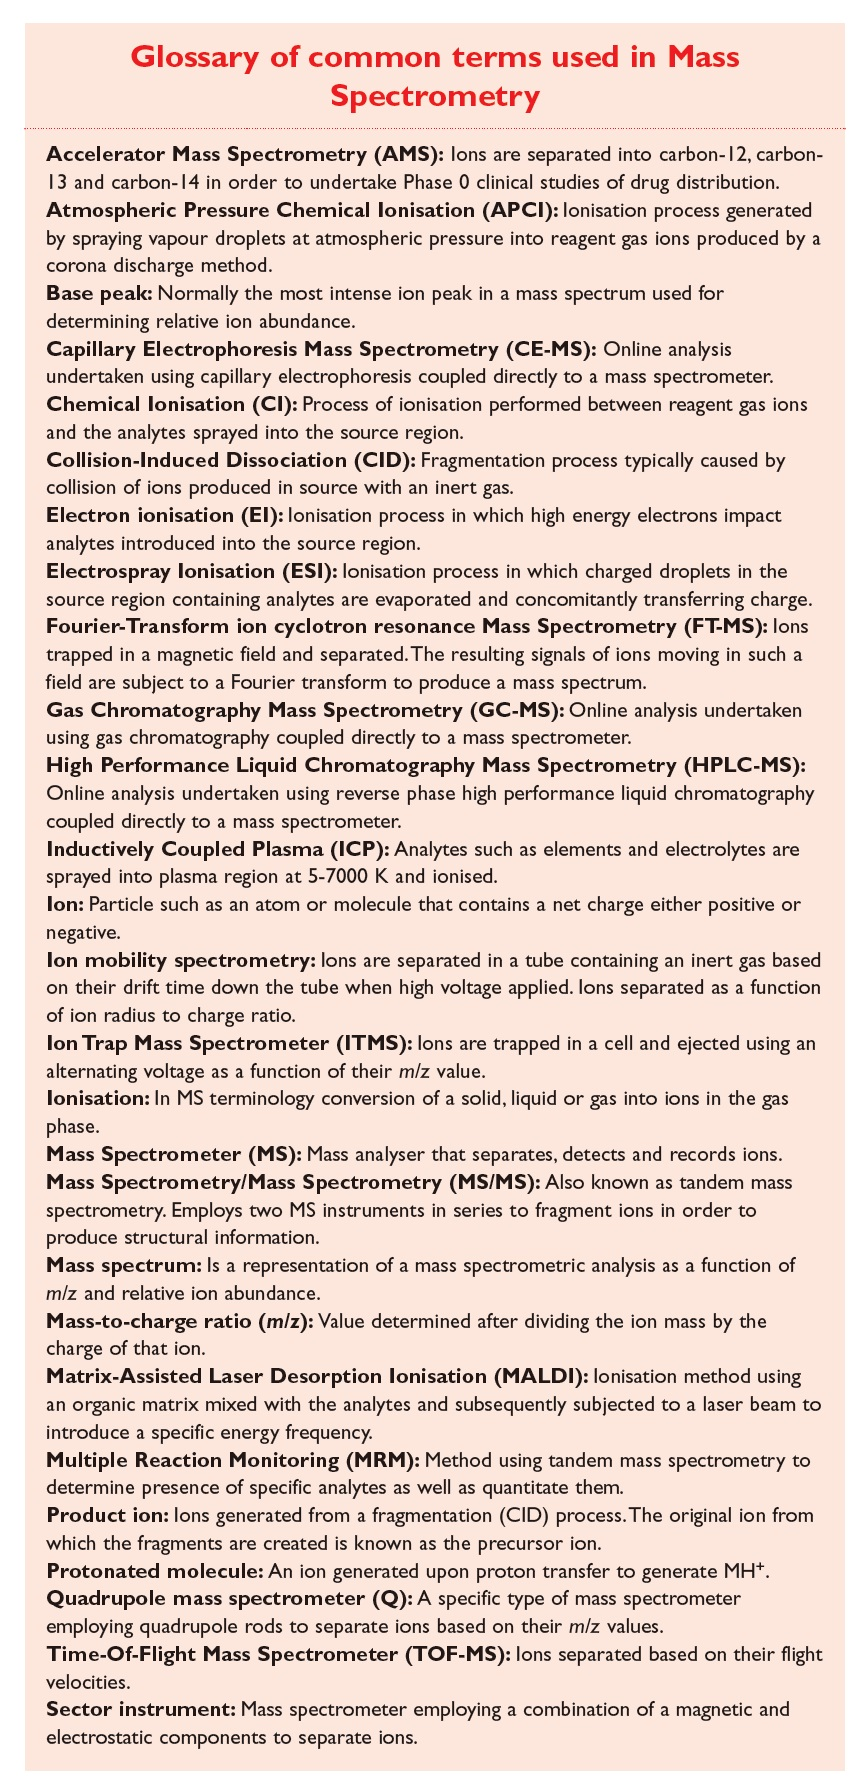 Glossary 1 Common terms used in Mass Spectrometry